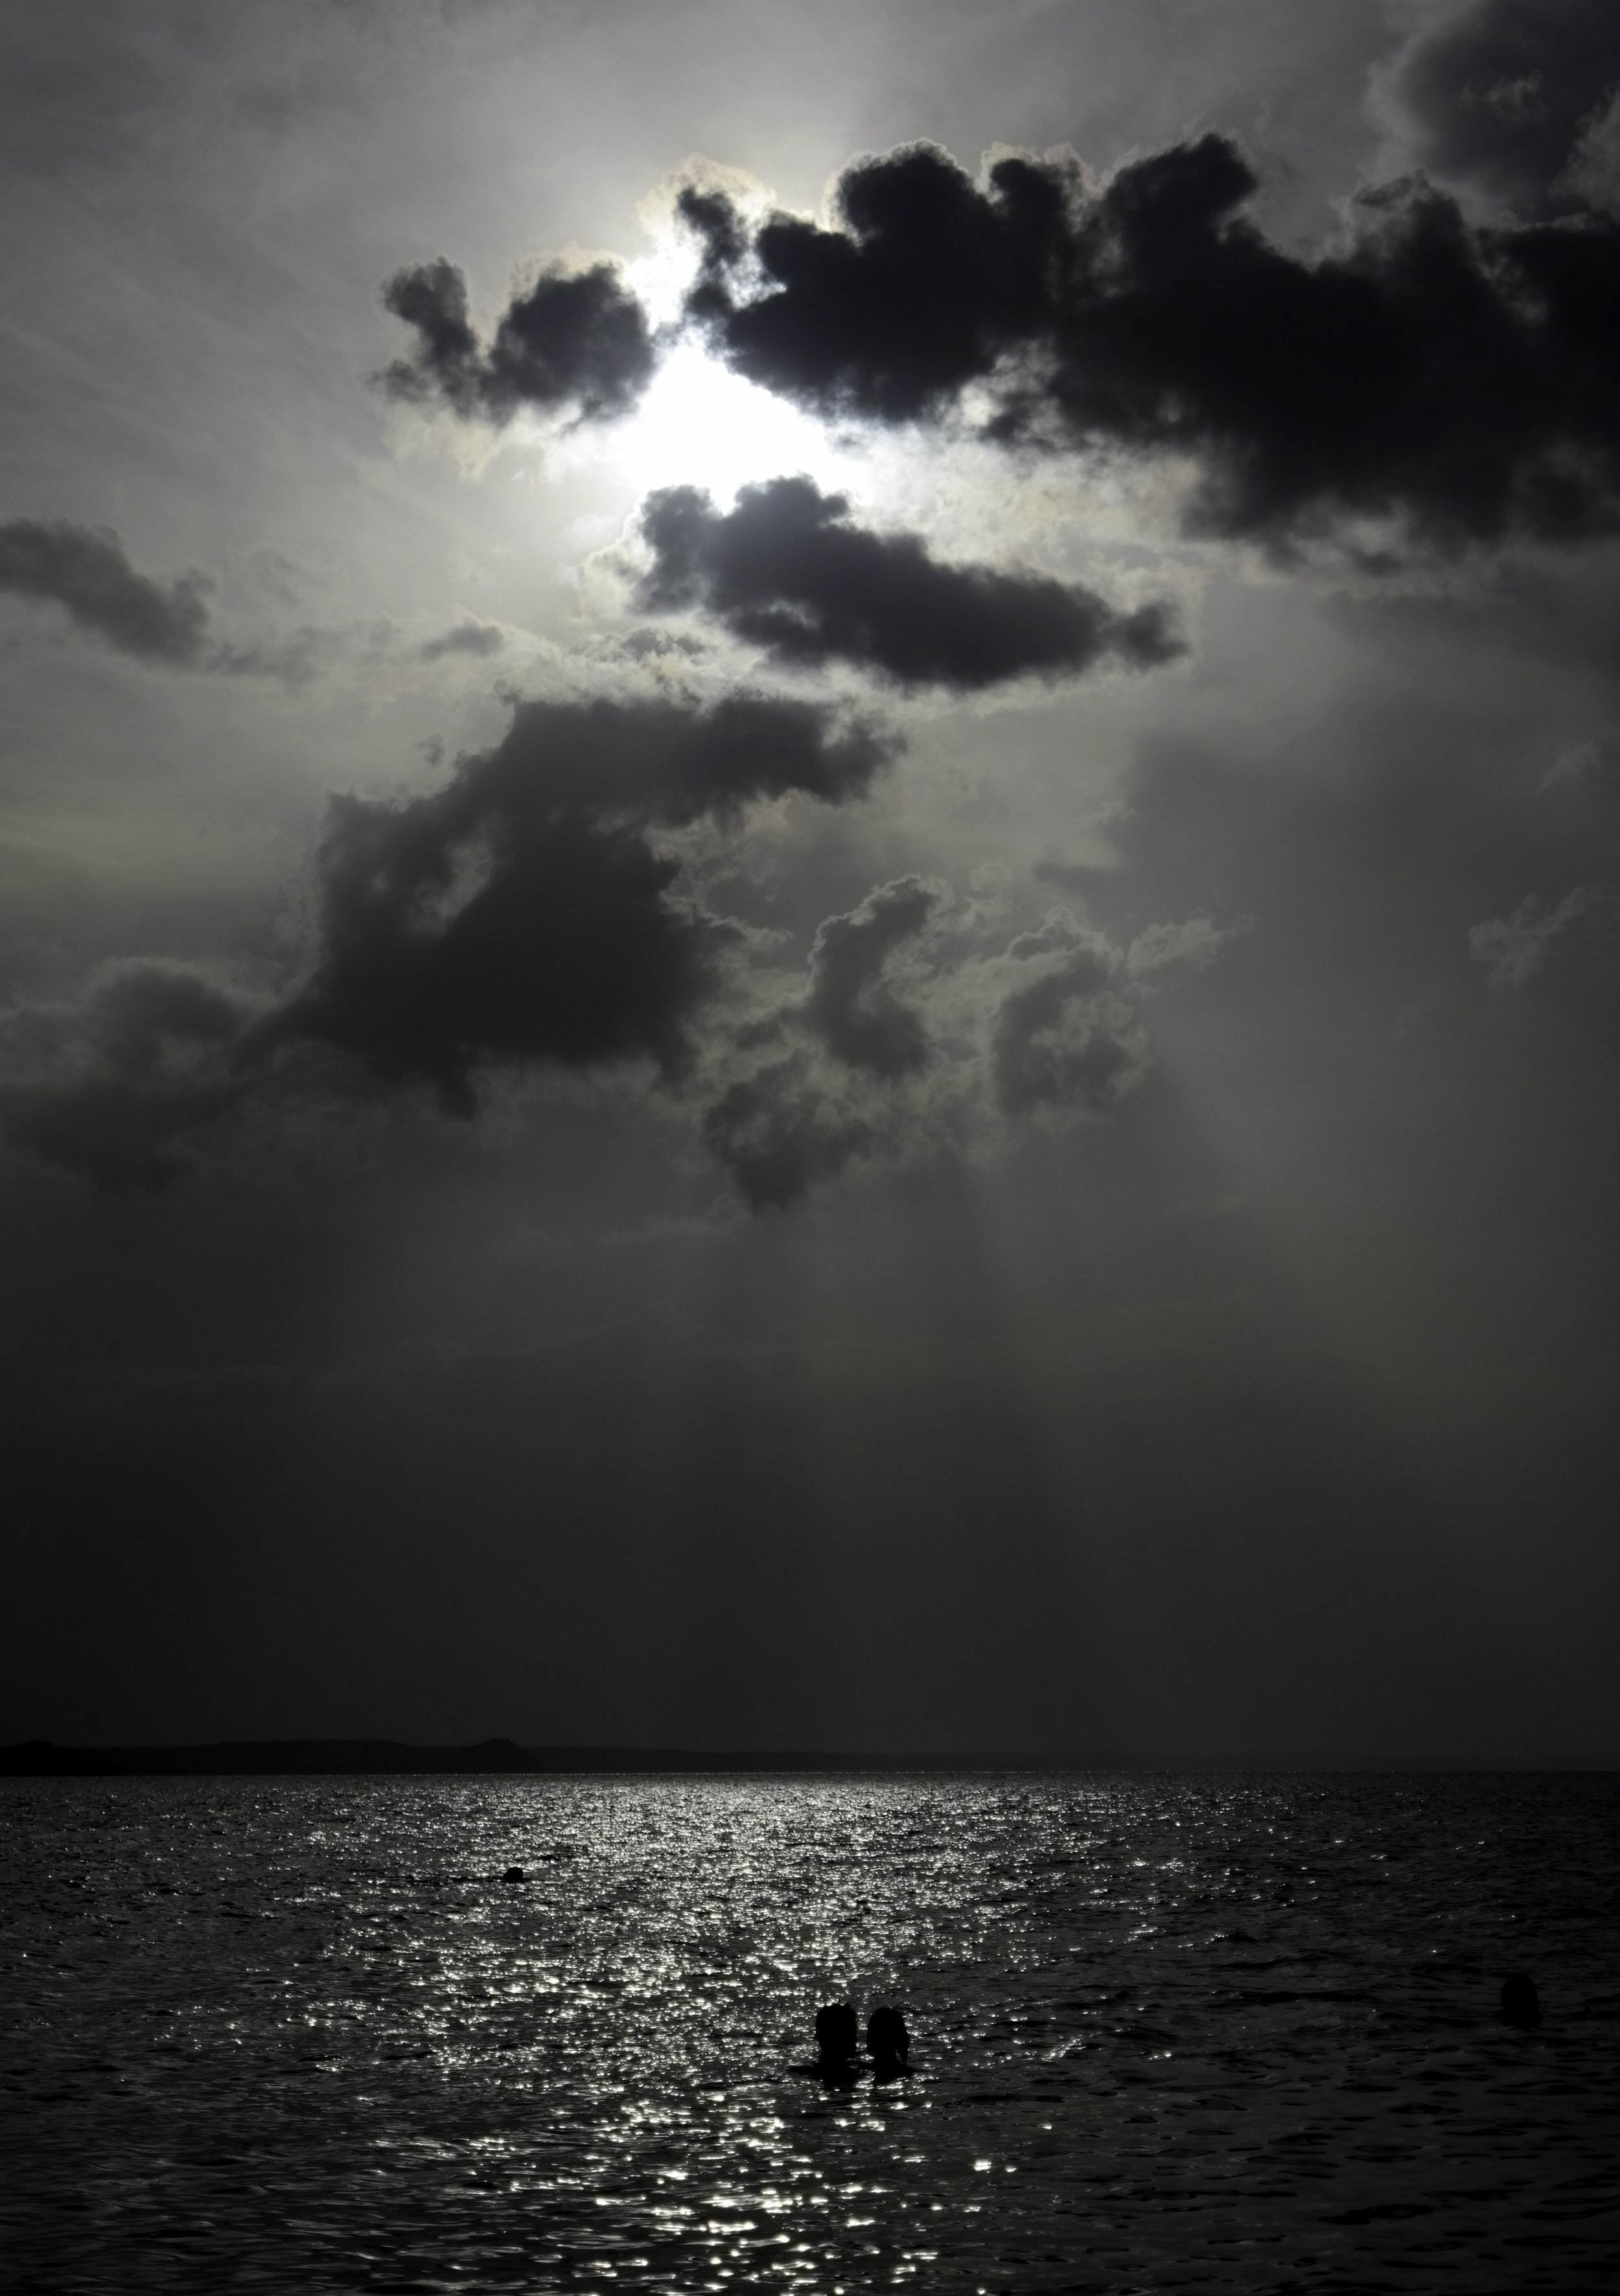 The power and sunset, ocean, and clouds.Cienfuegos.jpg